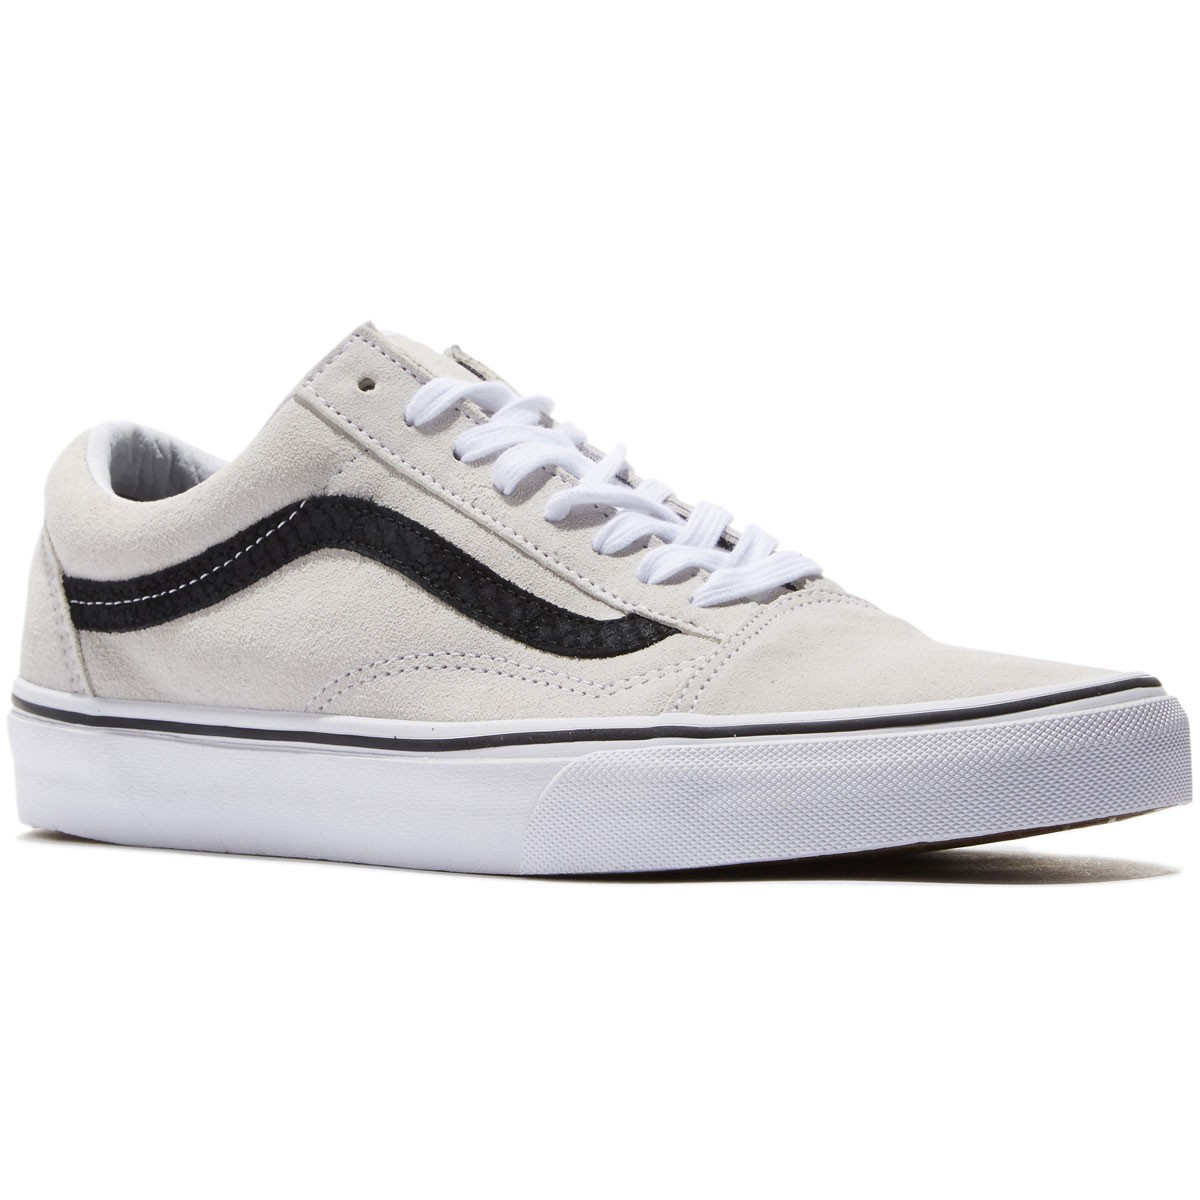 Vans Old Skool Shoes - White/Reptile/Black - 8.0